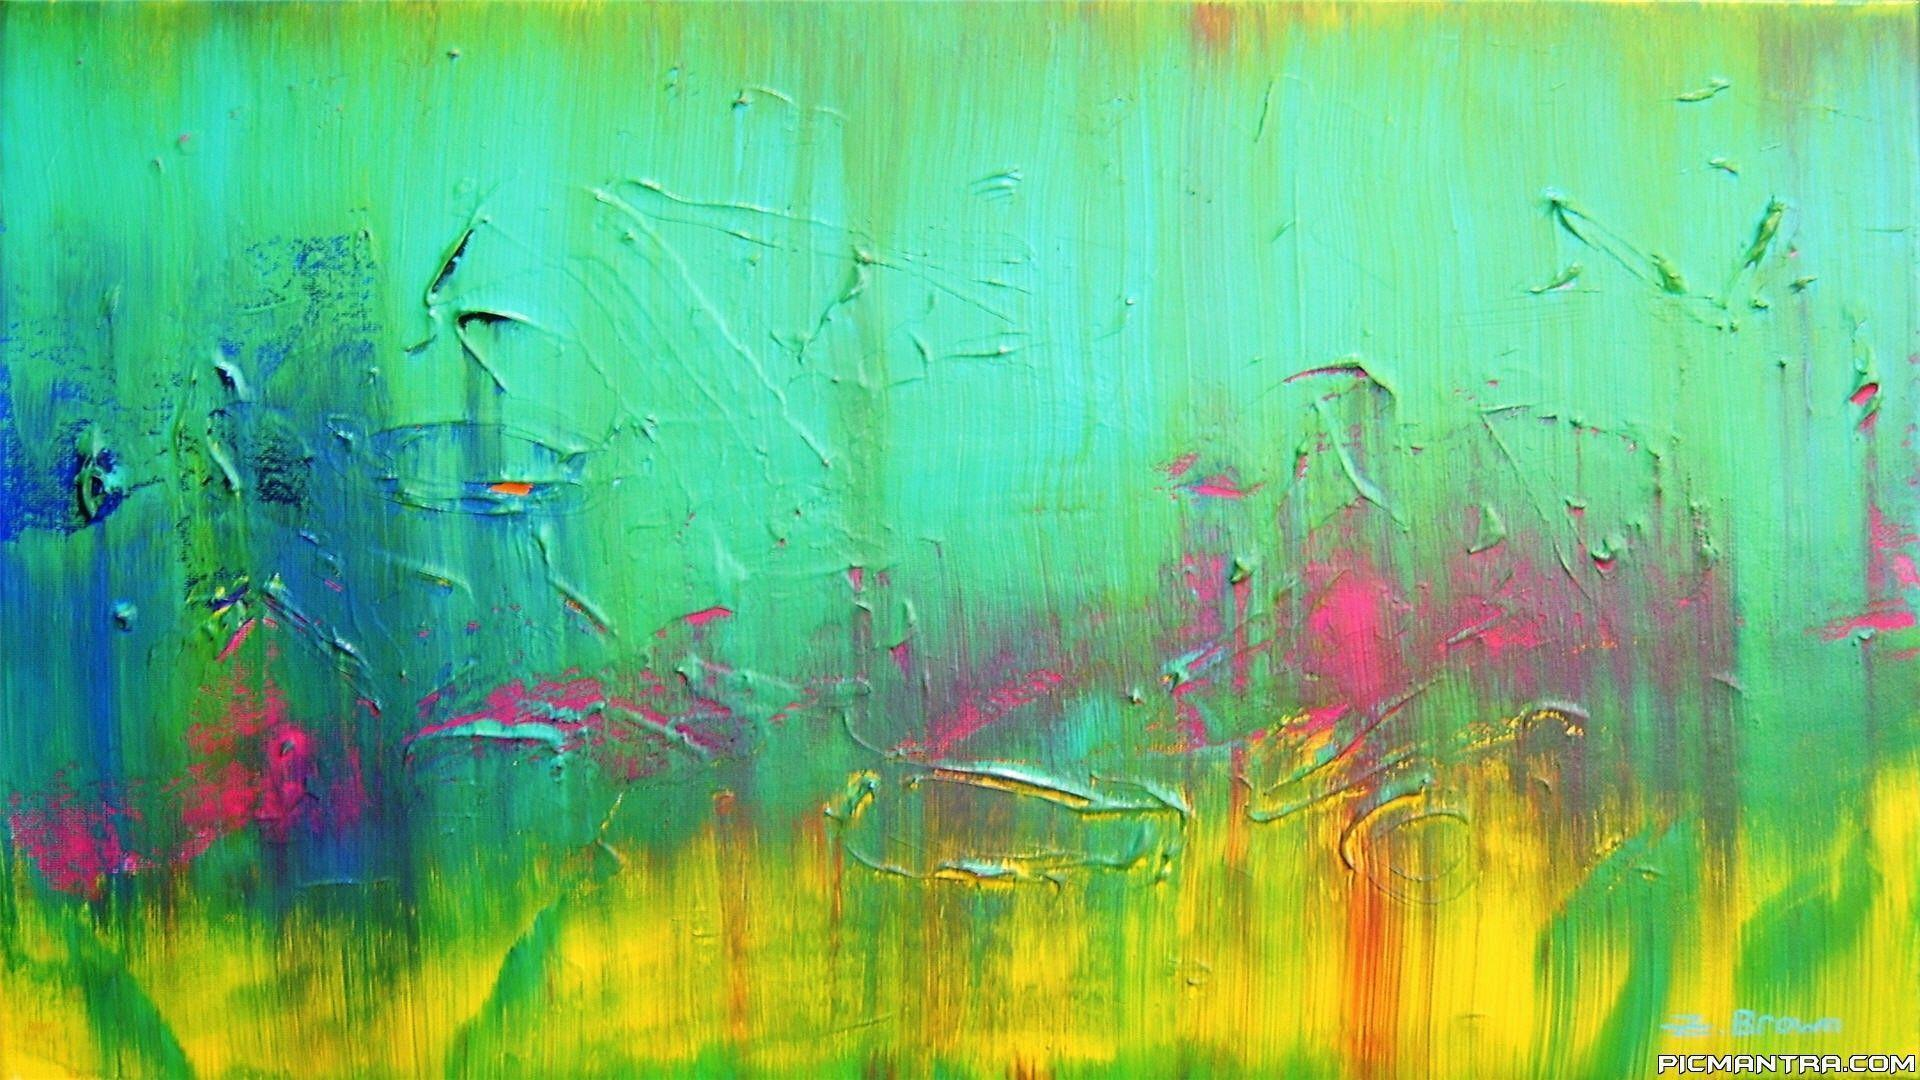 abstract painting wallpapers wallpaper - photo #3